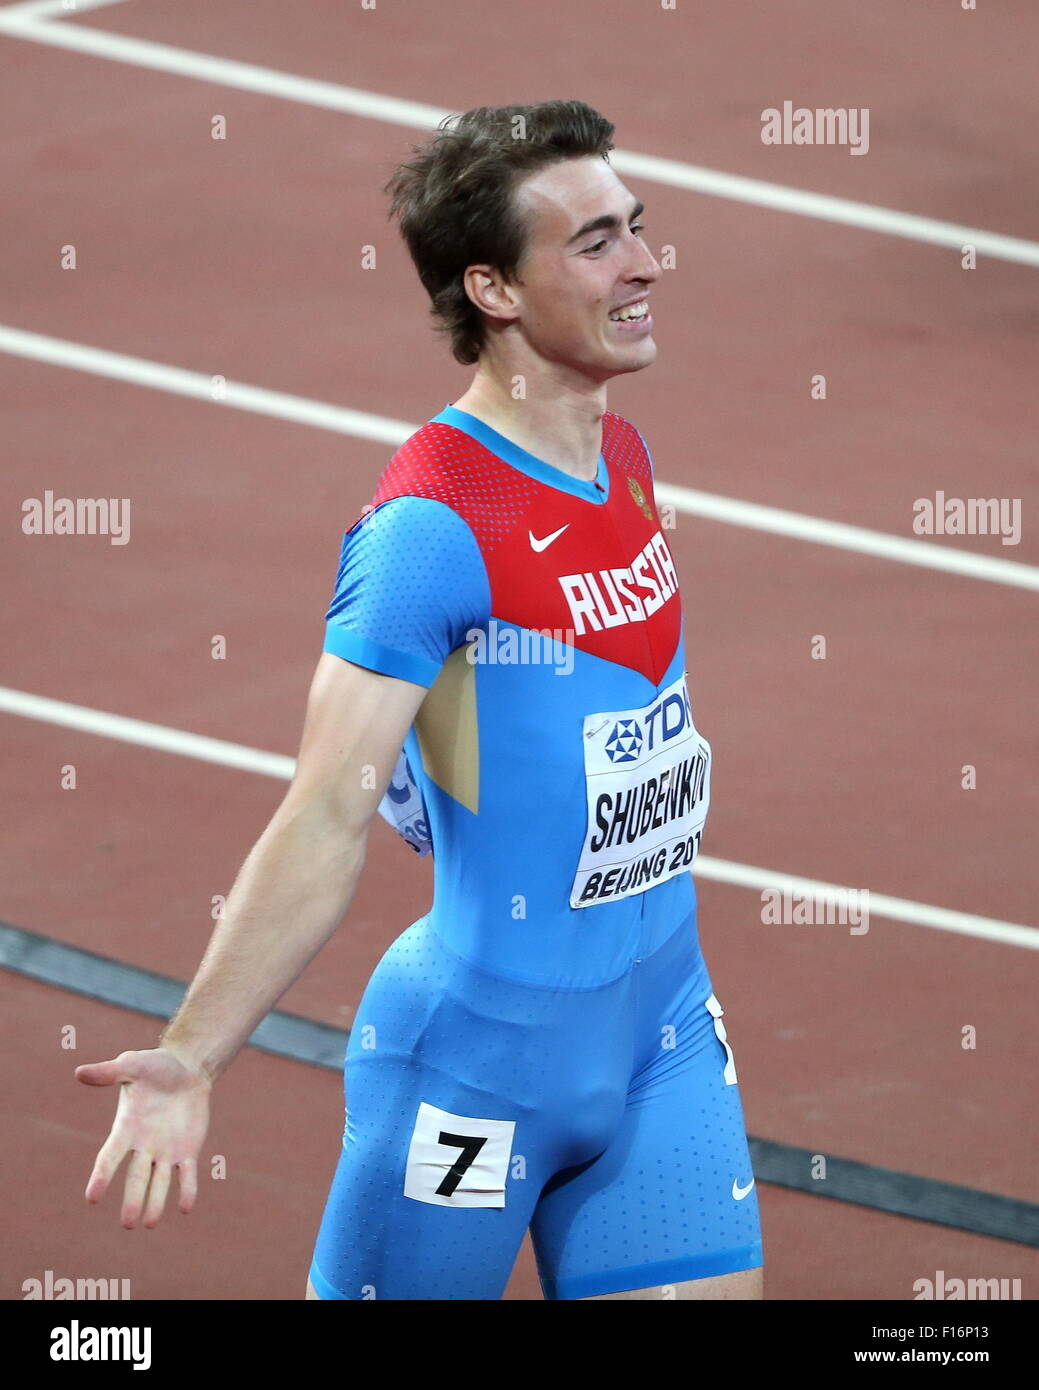 Russia s Sergey Shubenkov reacts after winning a gold medal in the men s  110m hurdles final on Day 7 of the 15th IAAF World Championships in  Athletics at ... 17068ed06c255